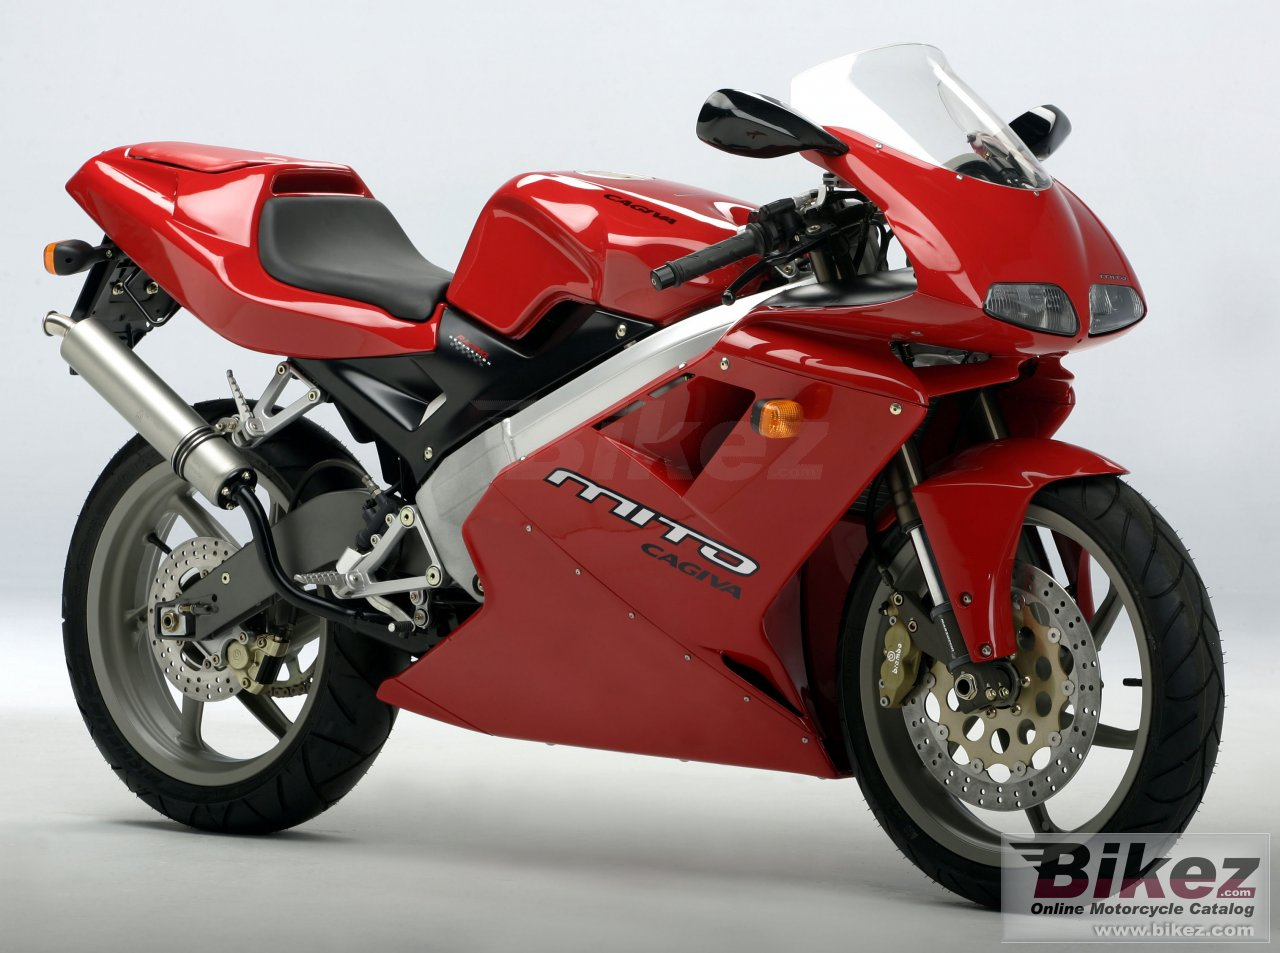 Big Cagiva mito 125 picture and wallpaper from Bikez.com